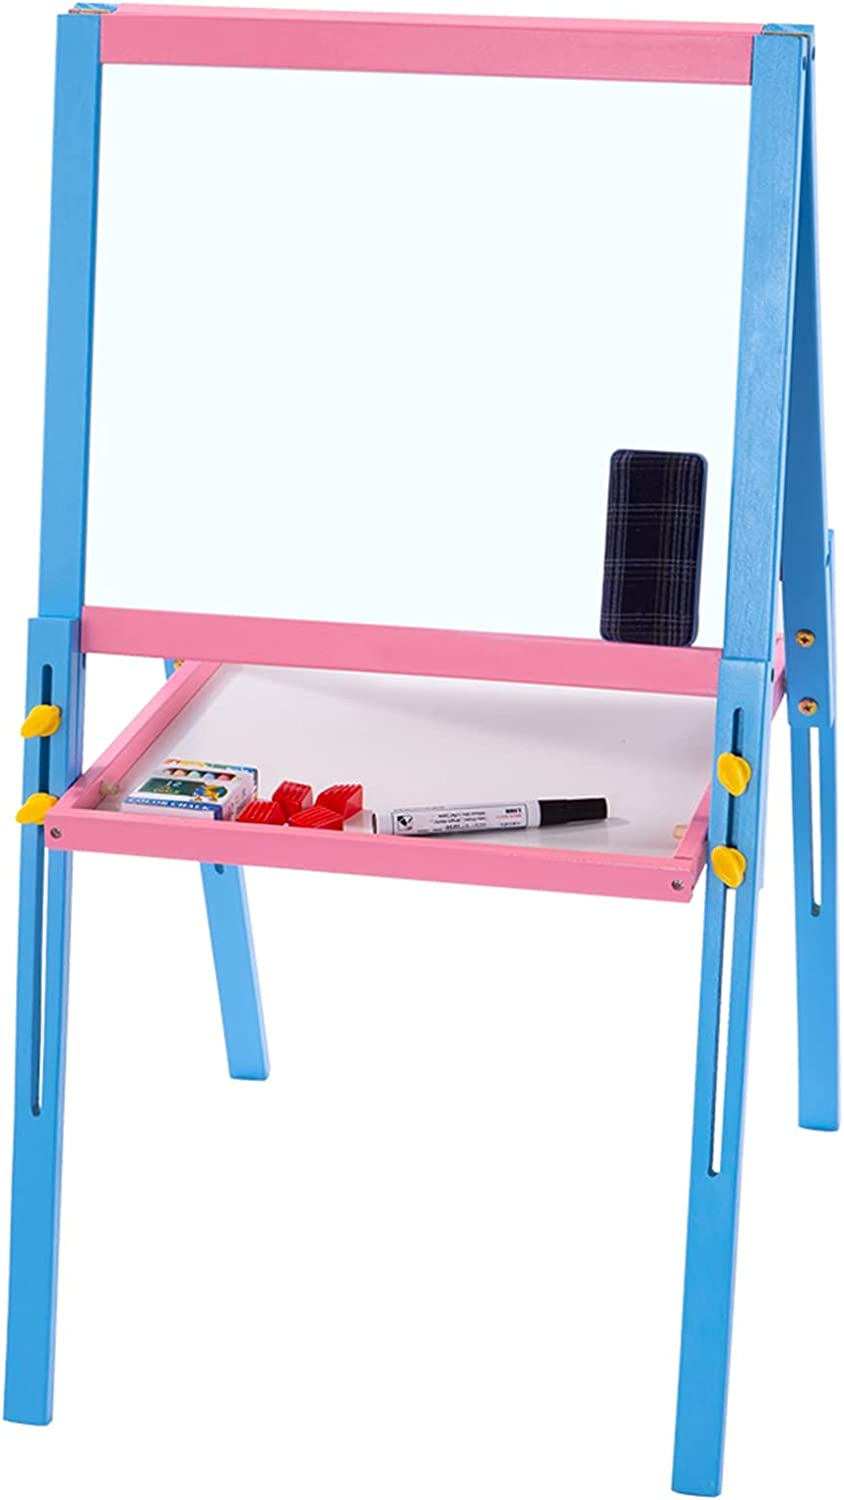 Import Skpitin HB-C90 Small Color Easel Dealing full price reduction Dry-E Children's Lifting